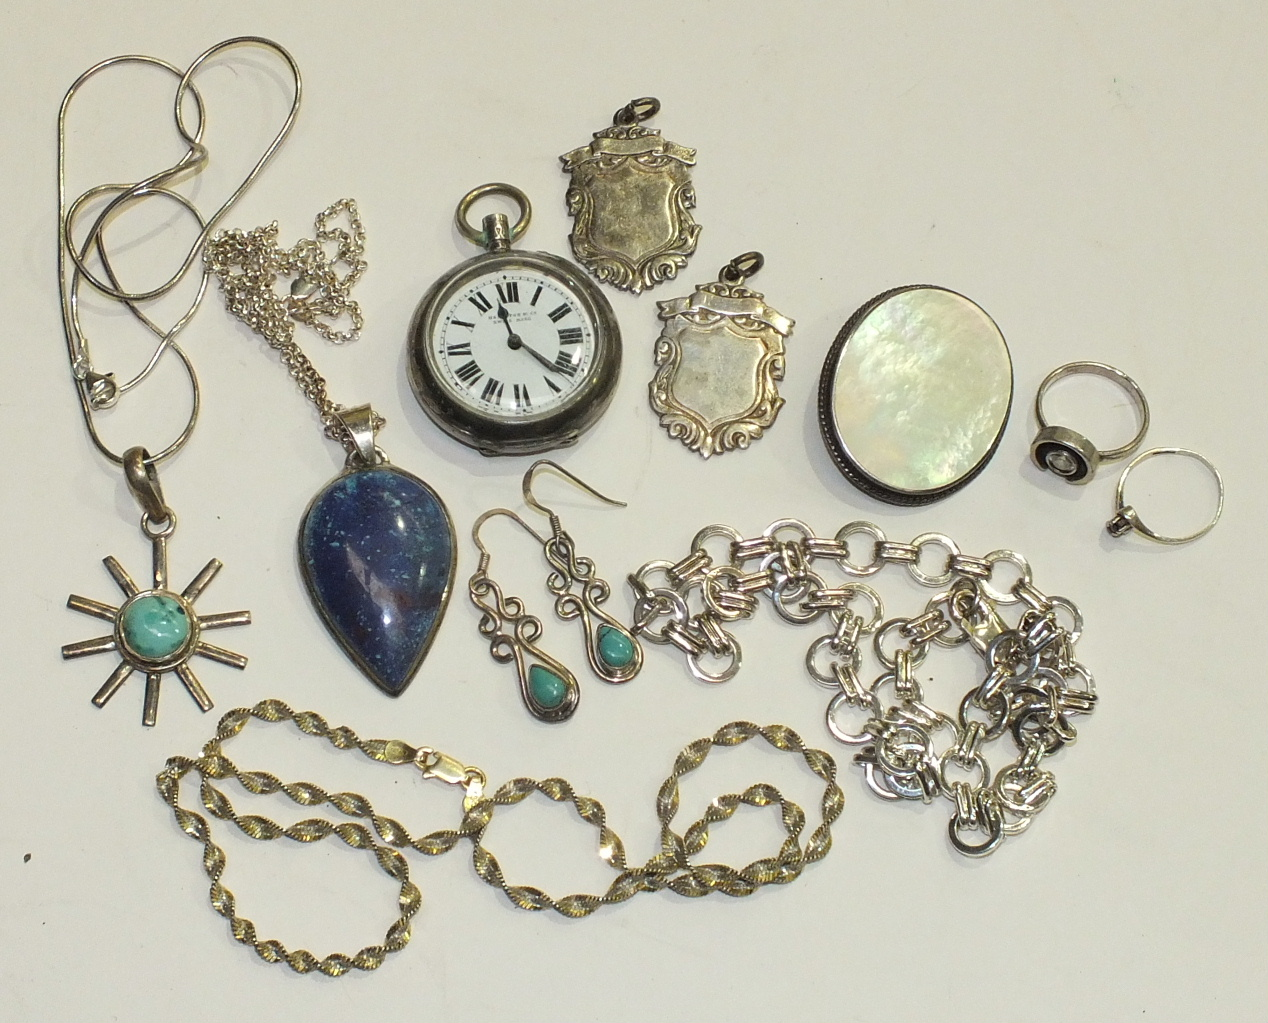 Lot 131 - A silver-cased pocket watch, (a/f) and a collection of silver jewellery.